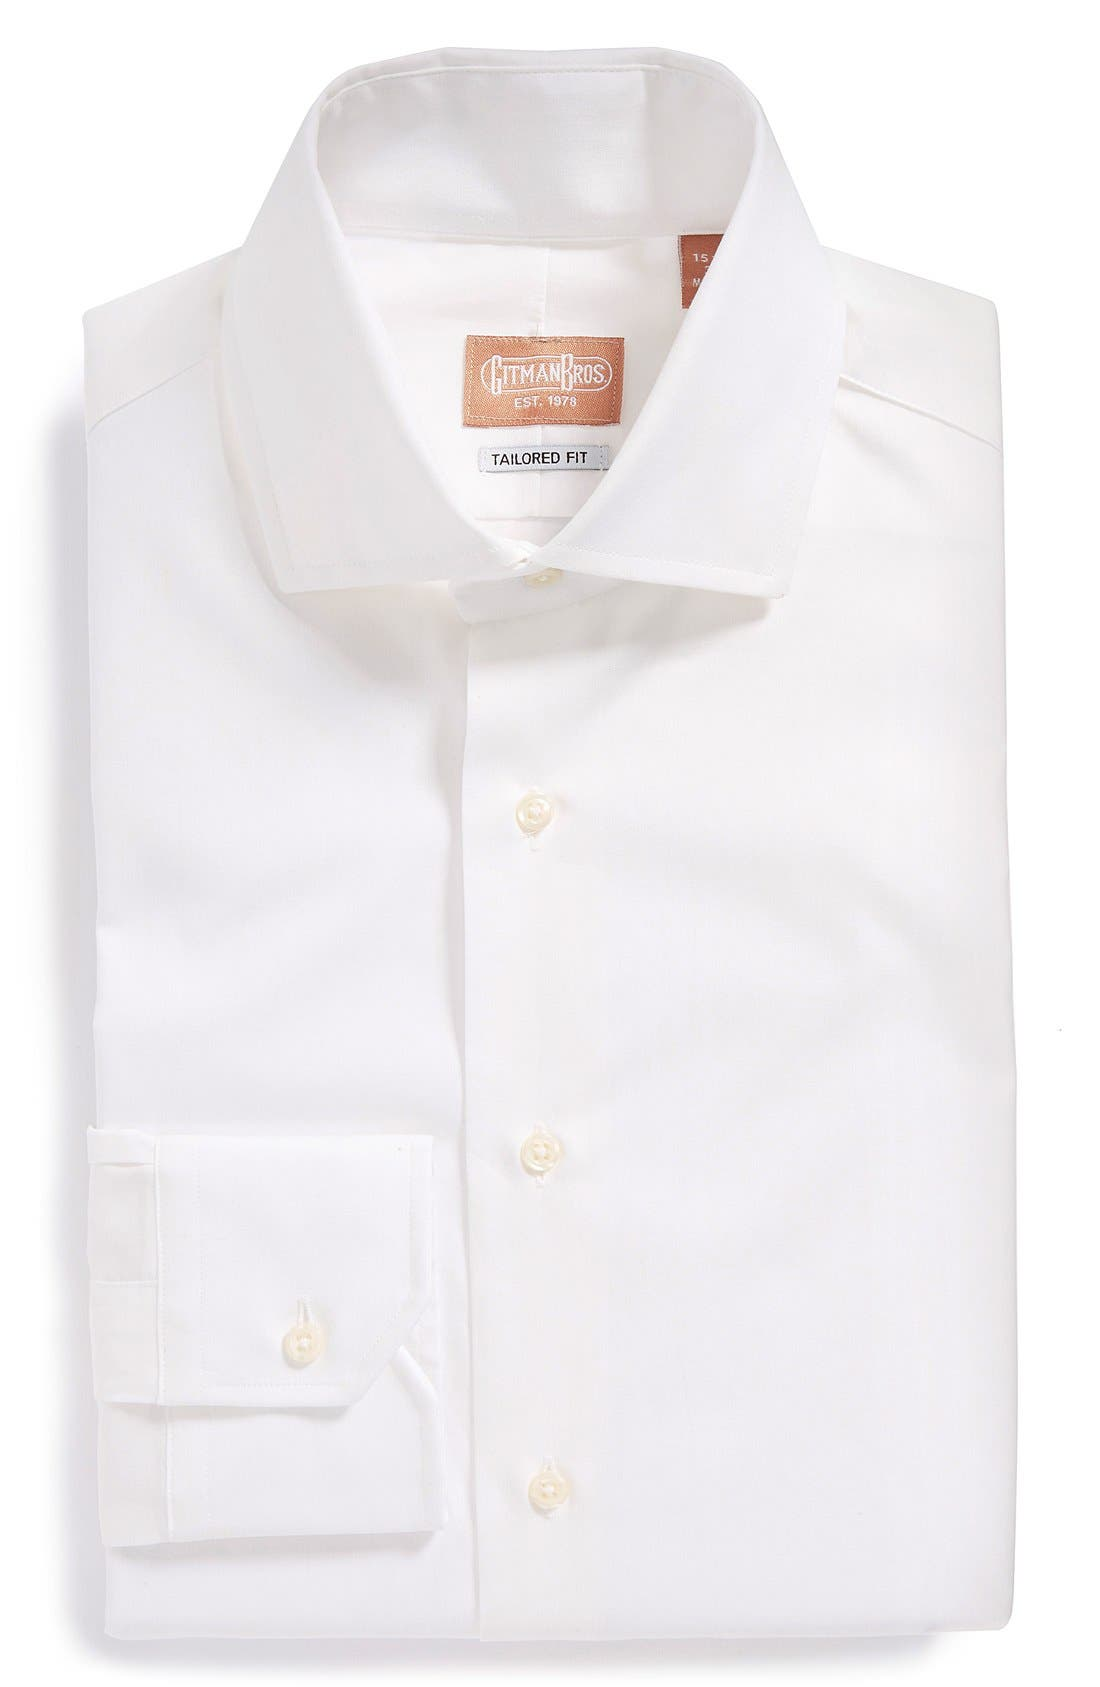 GITMAN, Tailored Fit Dress Shirt, Main thumbnail 1, color, WHITE